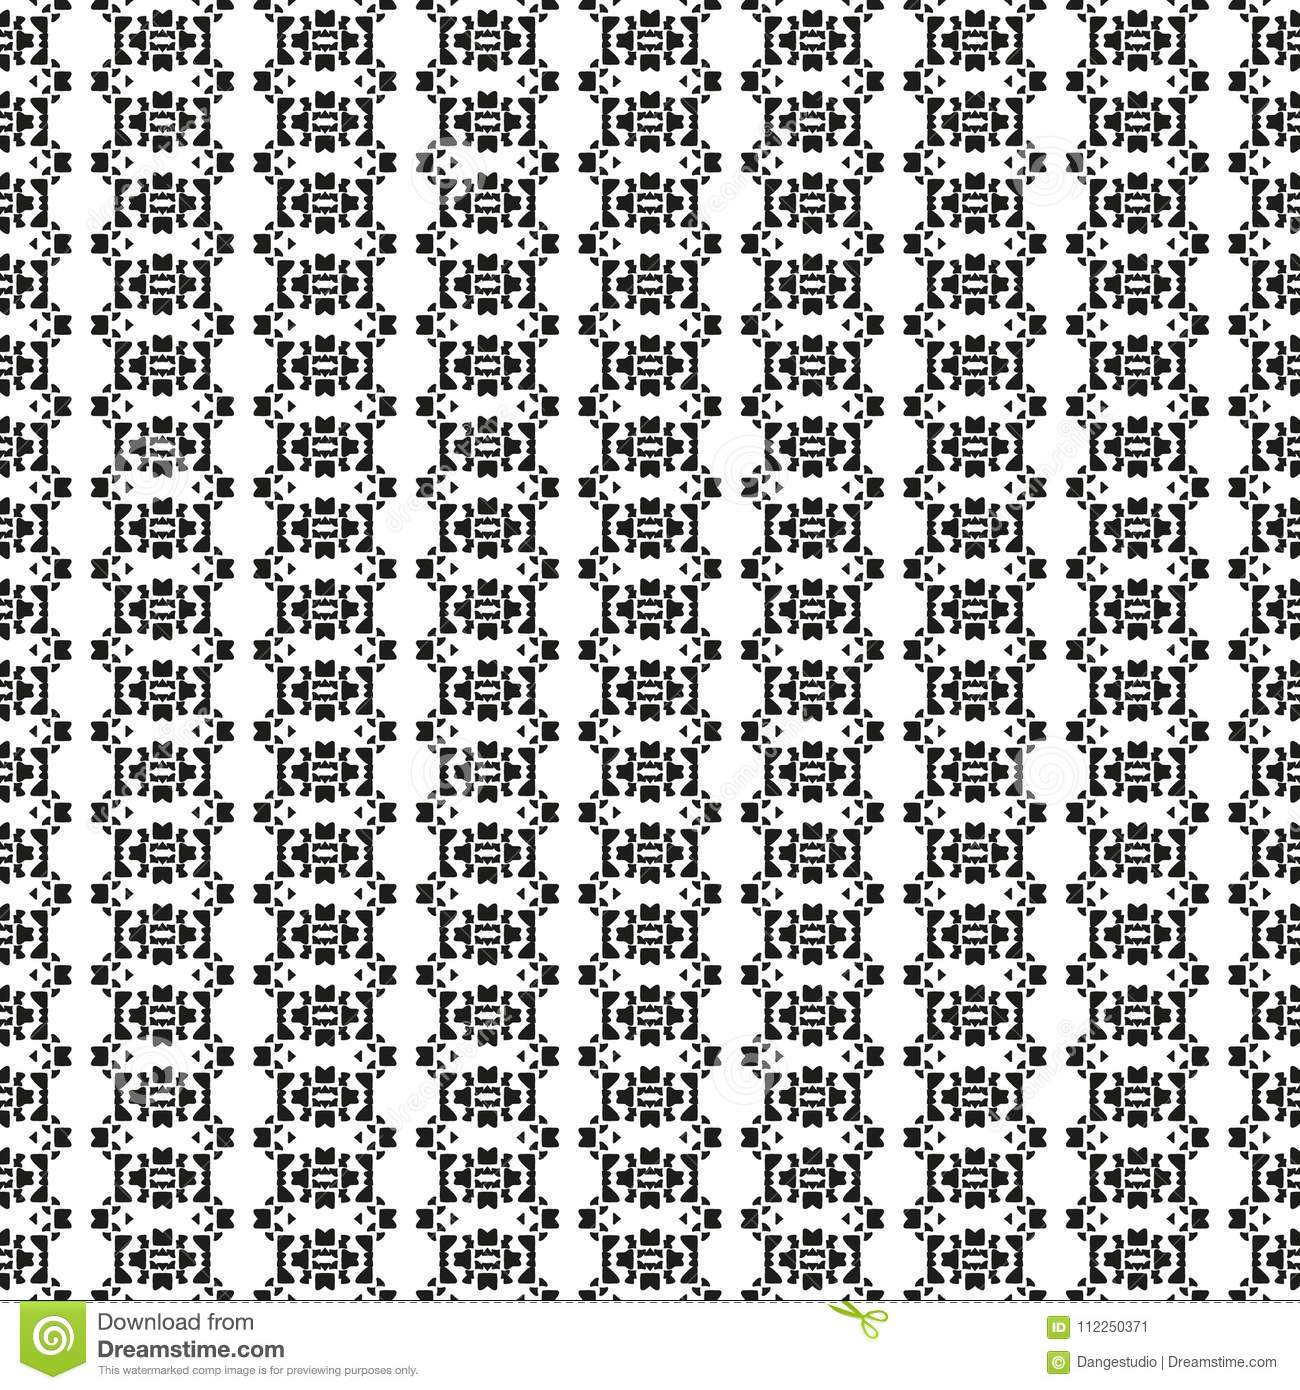 Black And White Seamless Ethnic Pattern Vintage Grunge Abstract Tribal Background For Textile Design Wallpaper Surface Textures Wrapping Paper